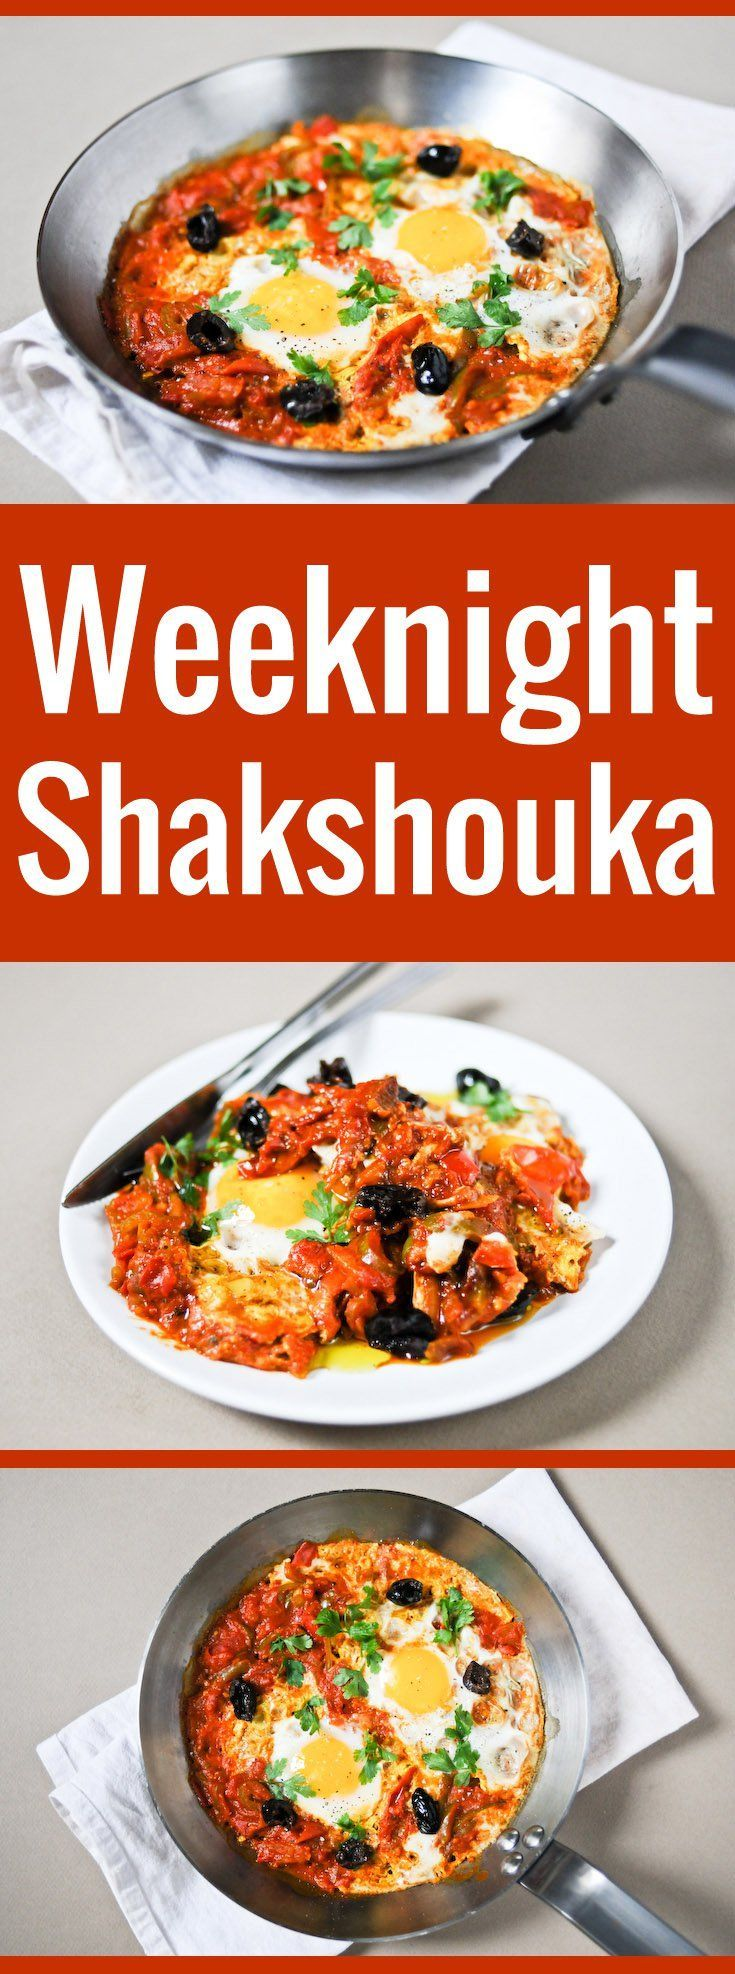 A super easy recipe for shakshuka, a simple and family-style dish of tomatoes stewed with onions, bell peppers and chiles, in which eggs are cooked.